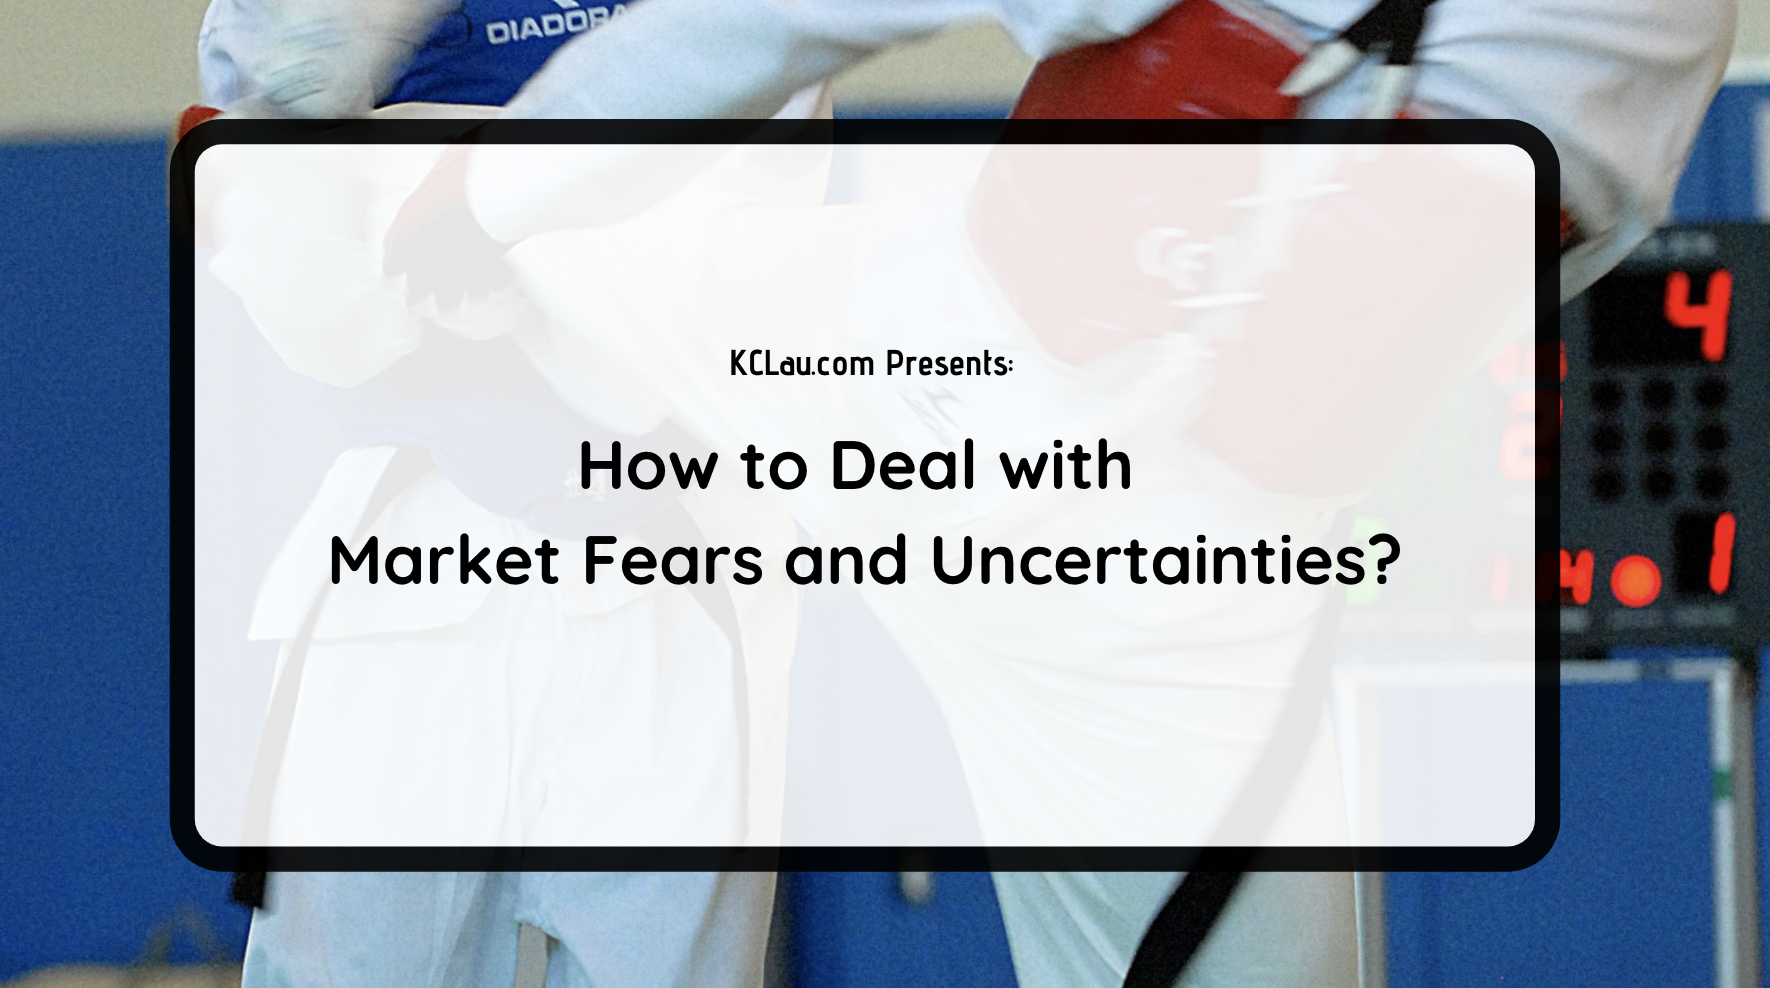 How to Deal with Market Fears and Uncertainties?